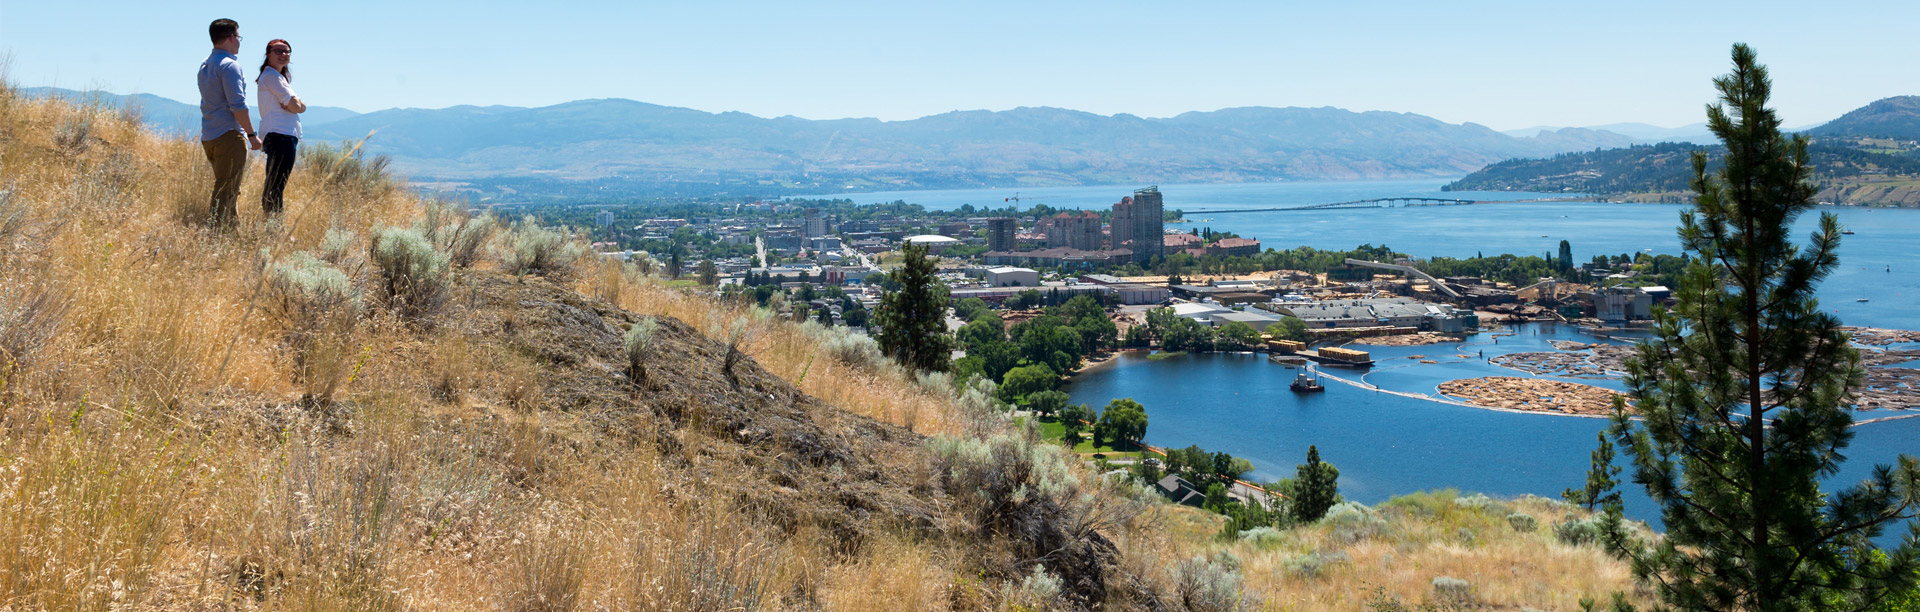 View over downtown Kelowna